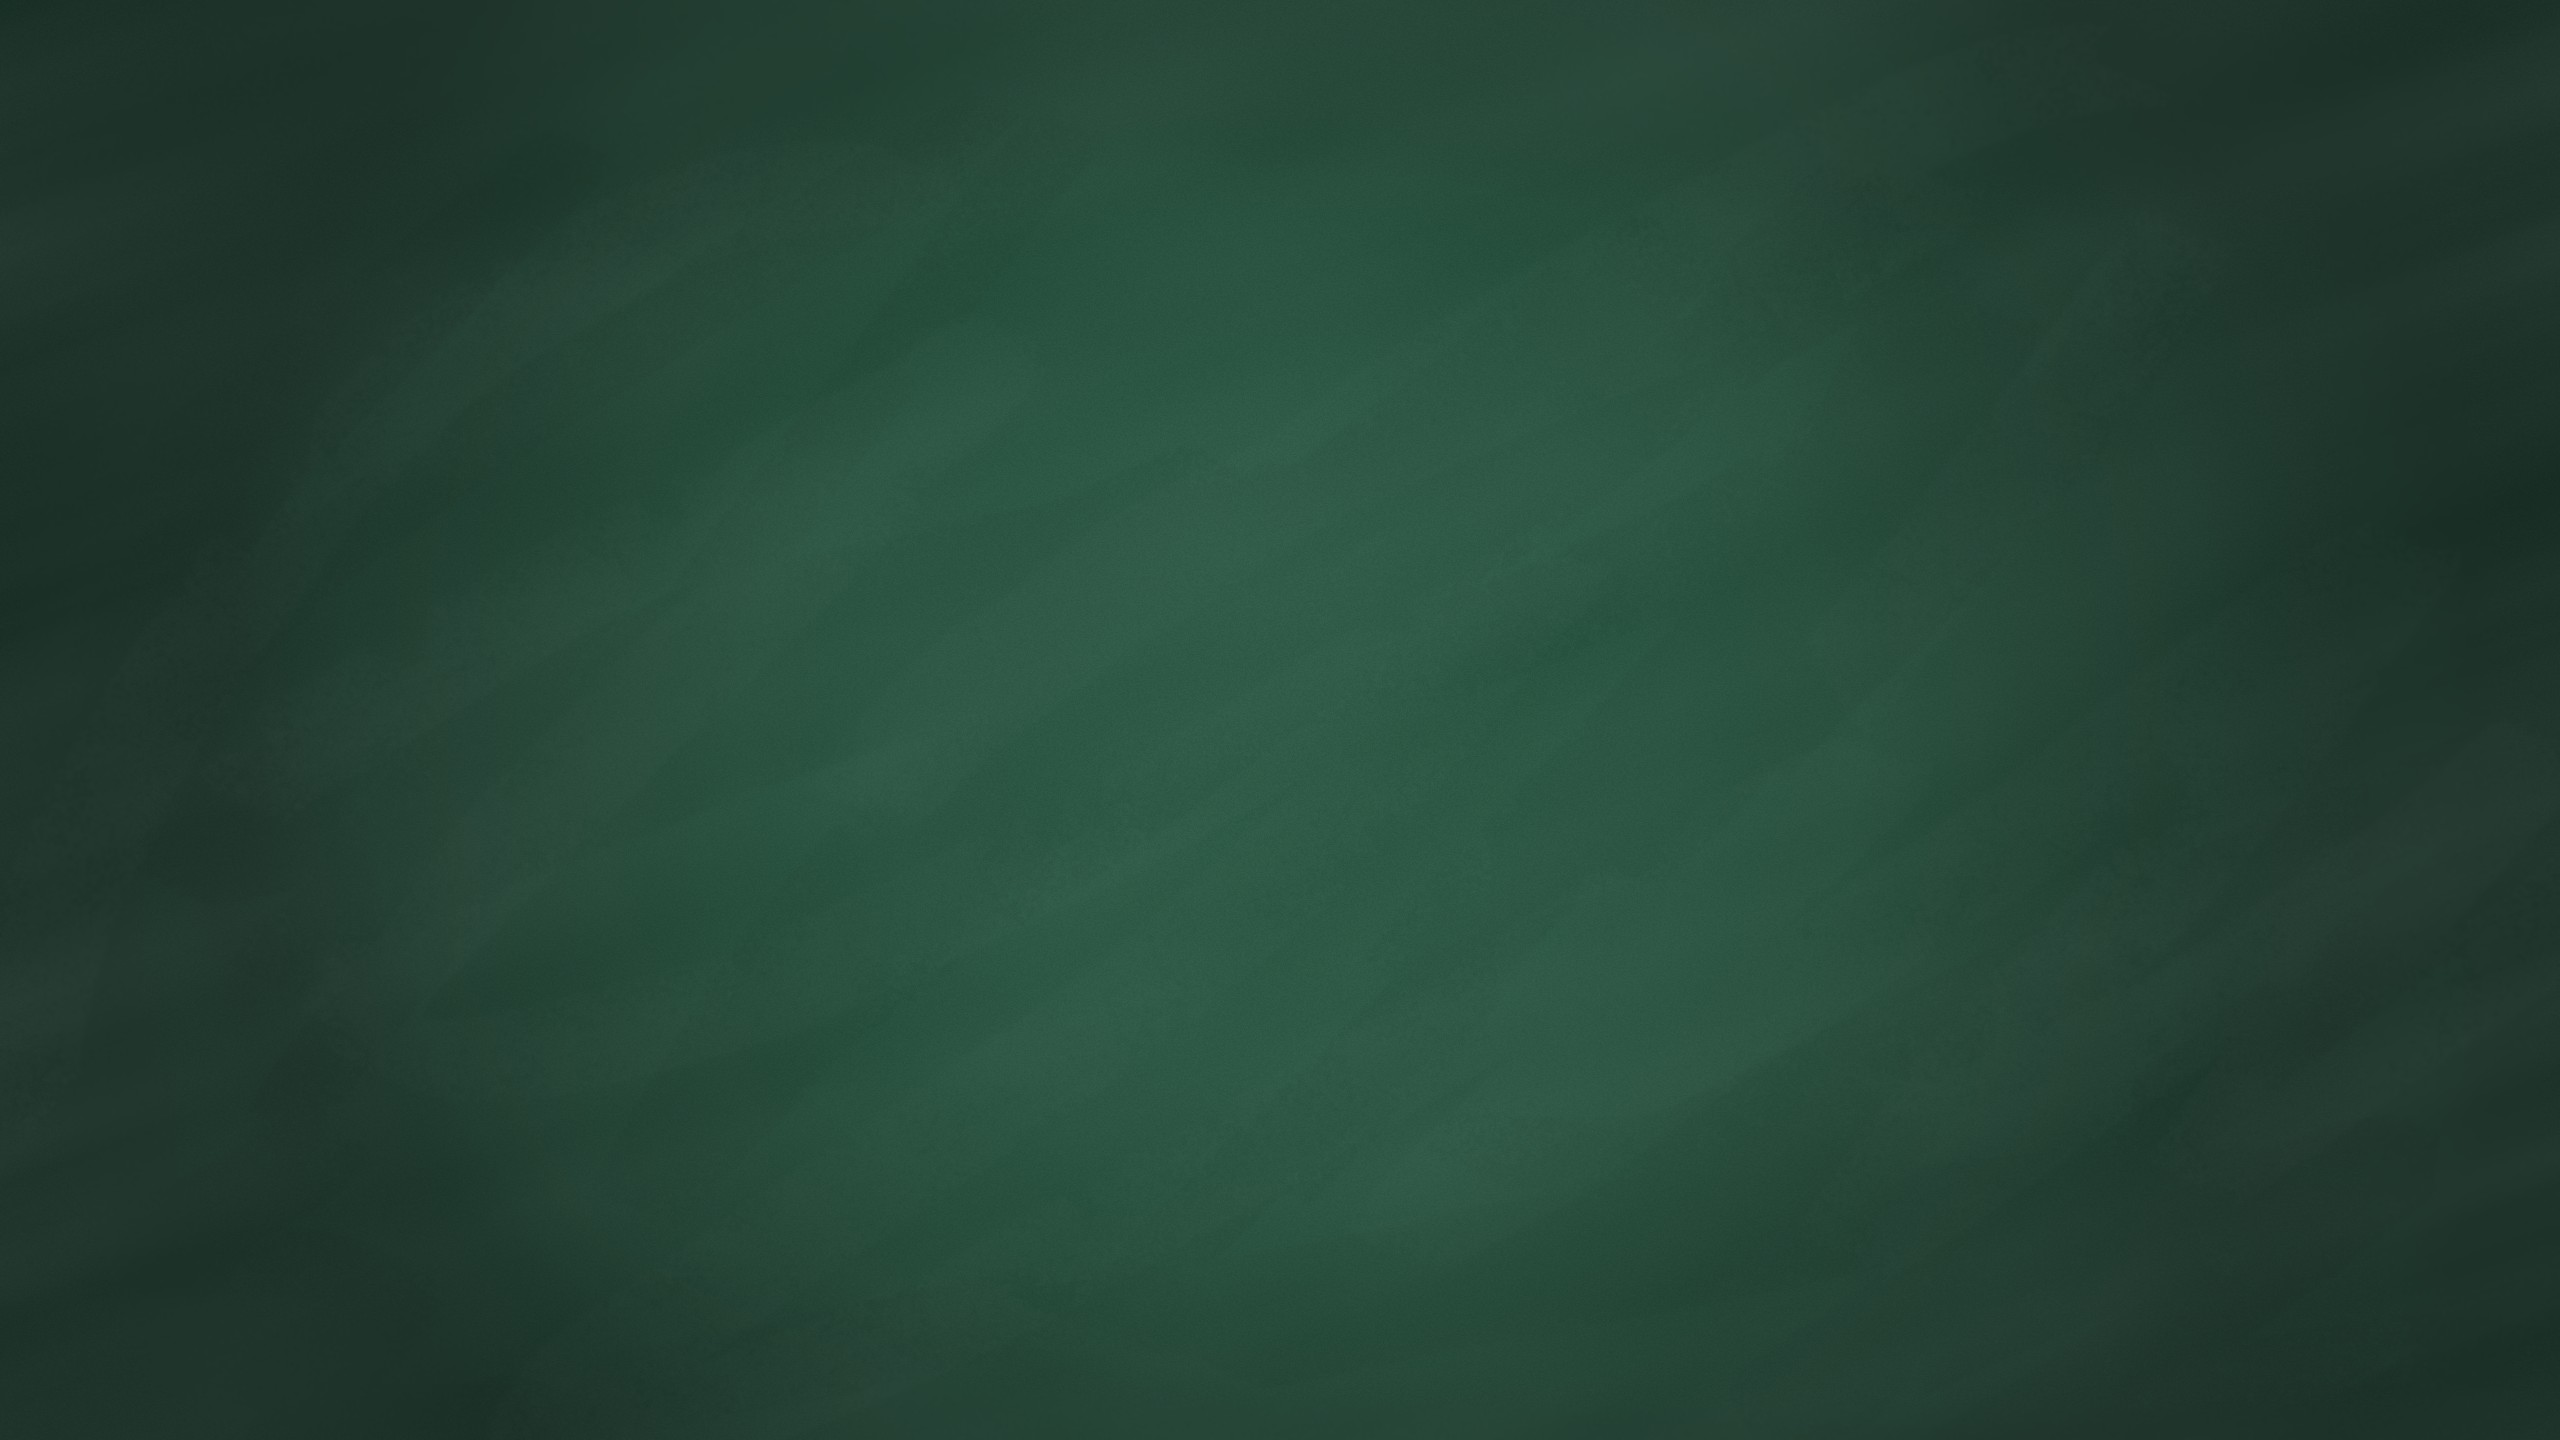 chalkboard wallpaper photo z19 2560x1440